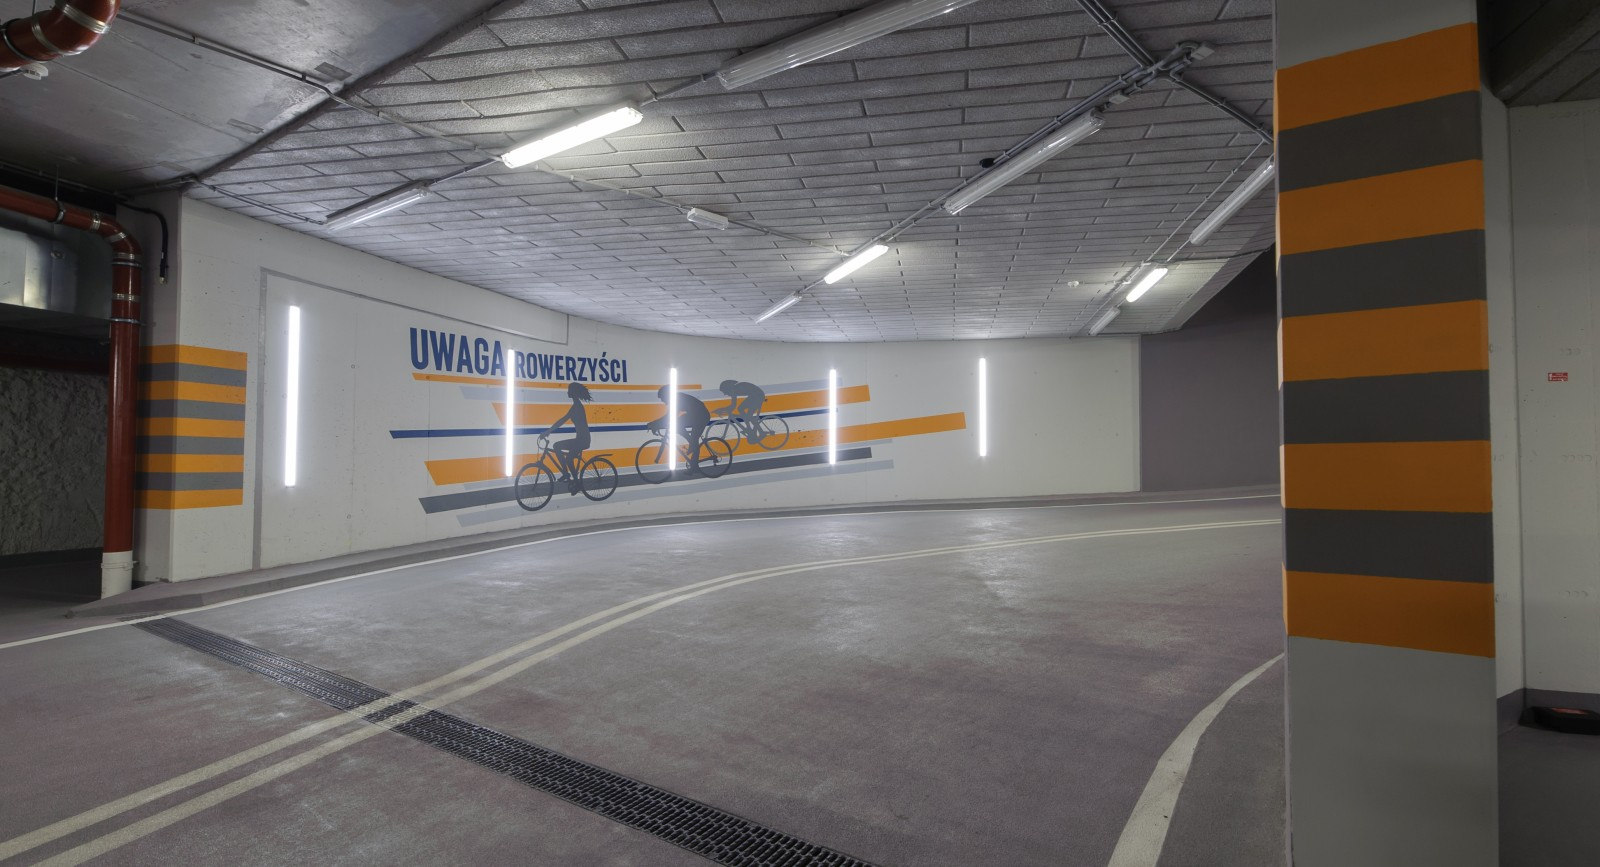 Underground garage paintings in Proximo office building created by polish artists | PROXIMO | Portfolio